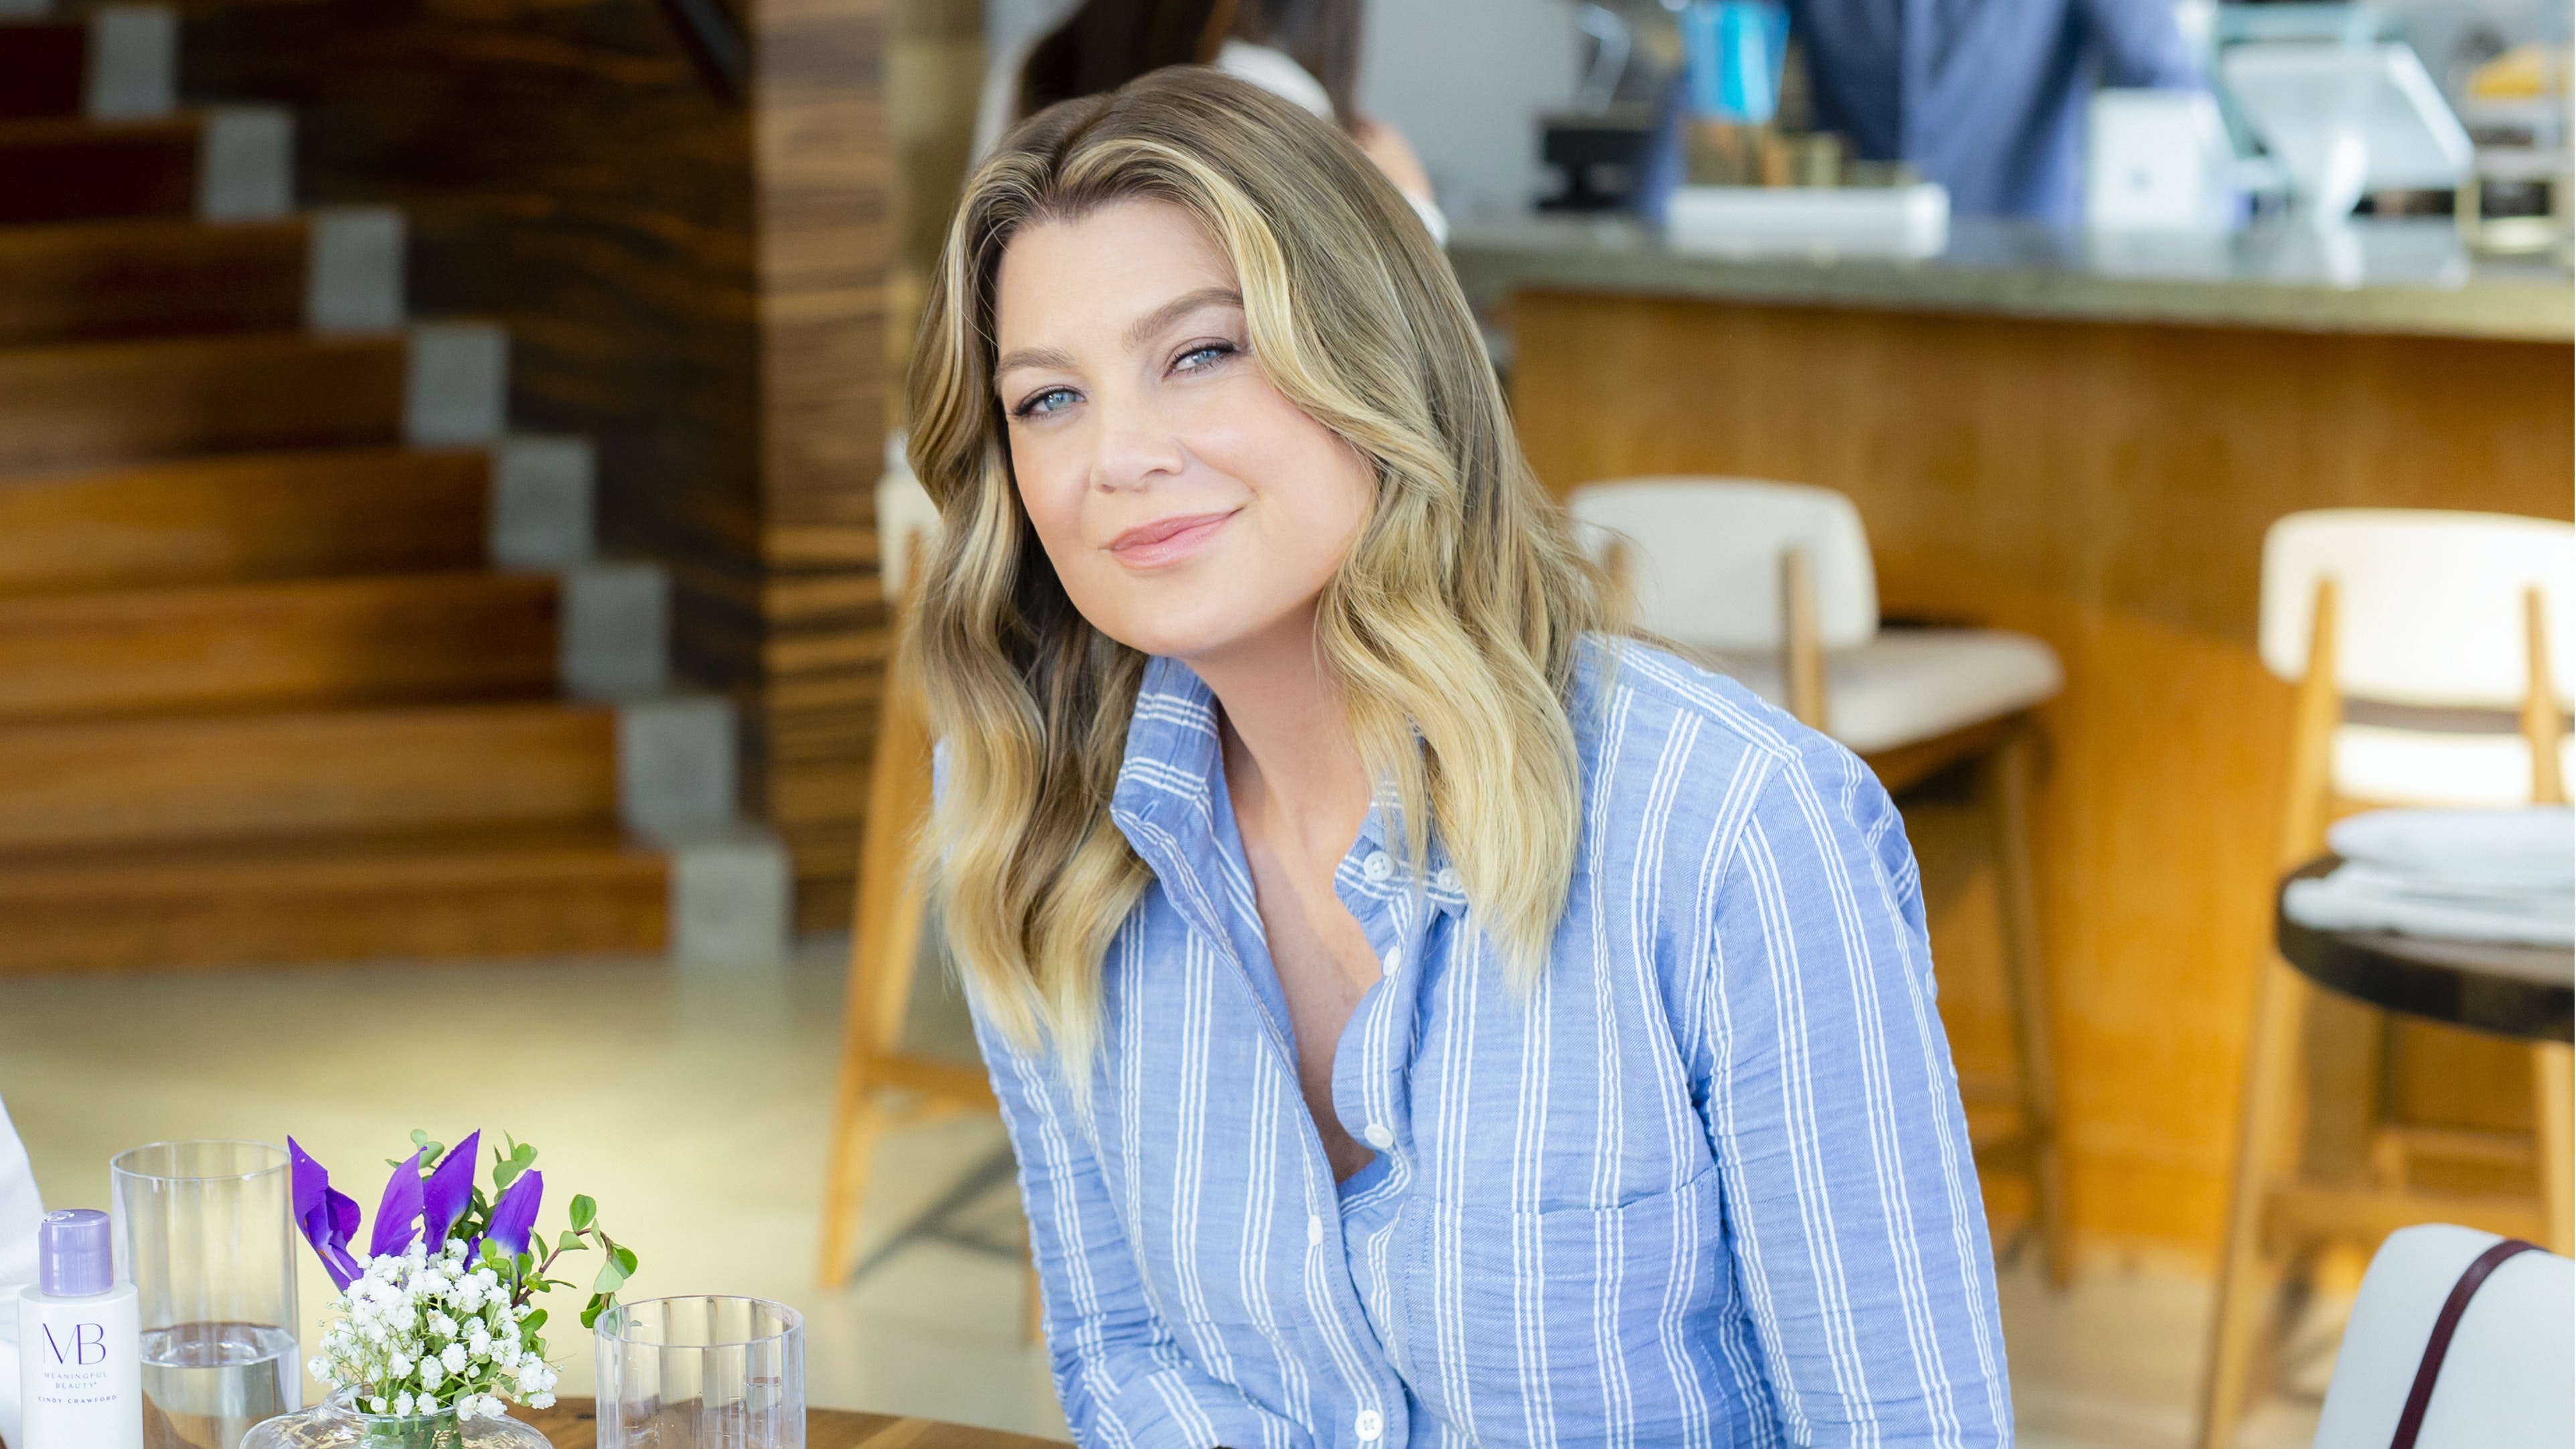 Ellen Pompeo on How Her Skin and Career Seem to Stand the Test of Time